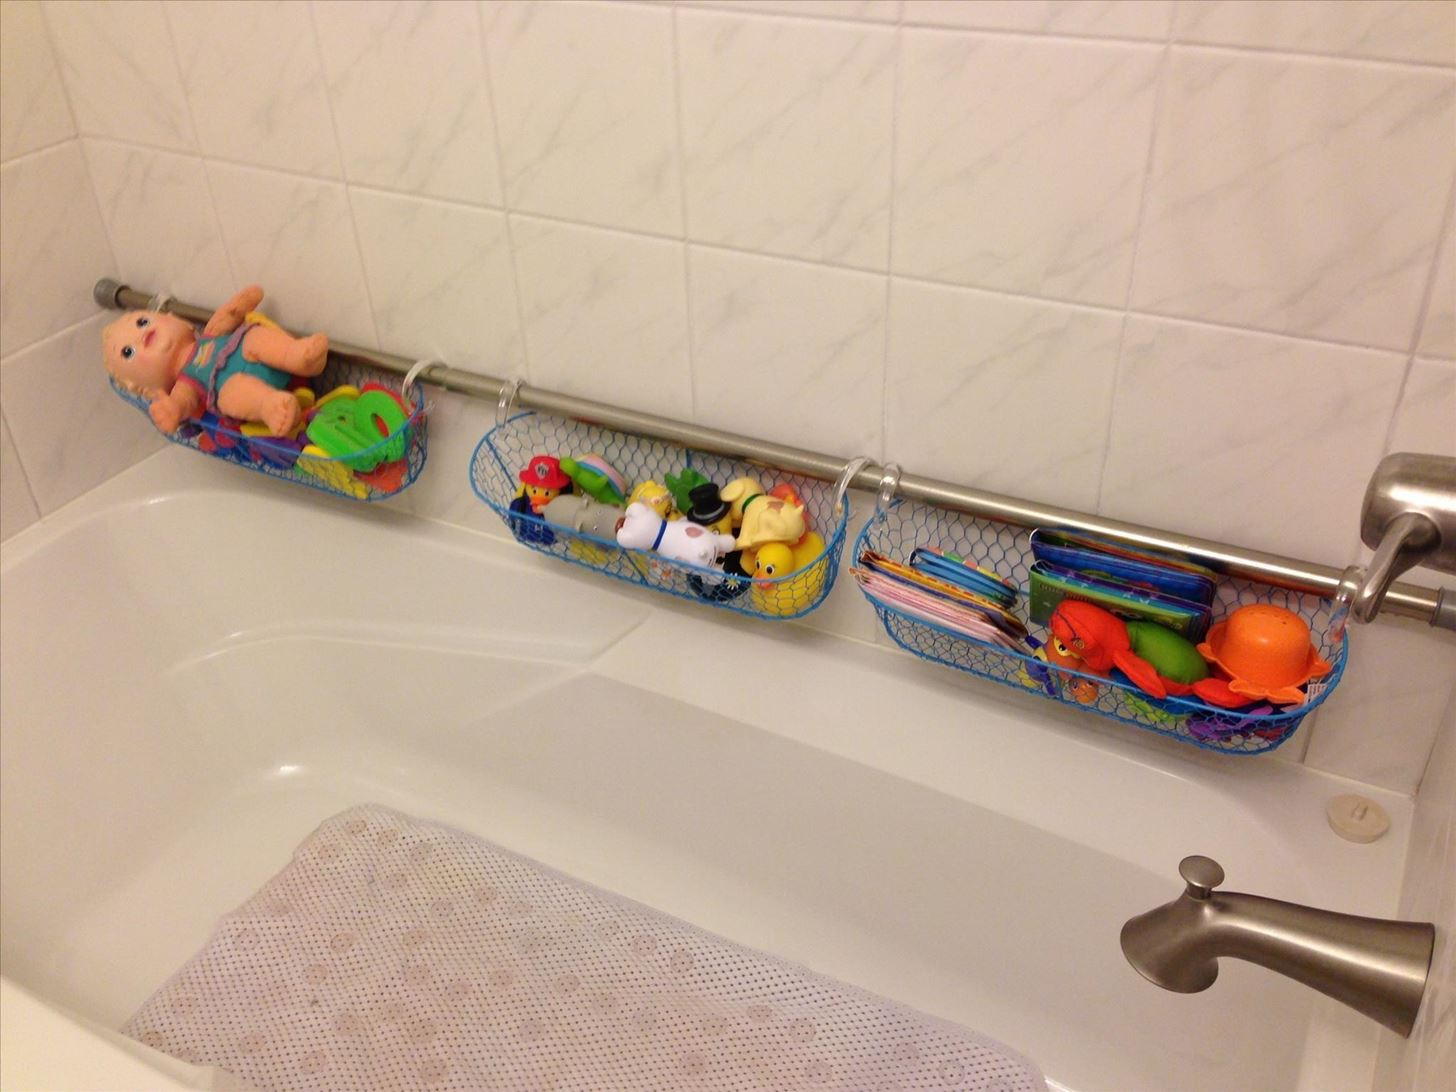 Shower curtain rods - Use Extra Shower Curtain Rods To Increase Bathroom Storage More